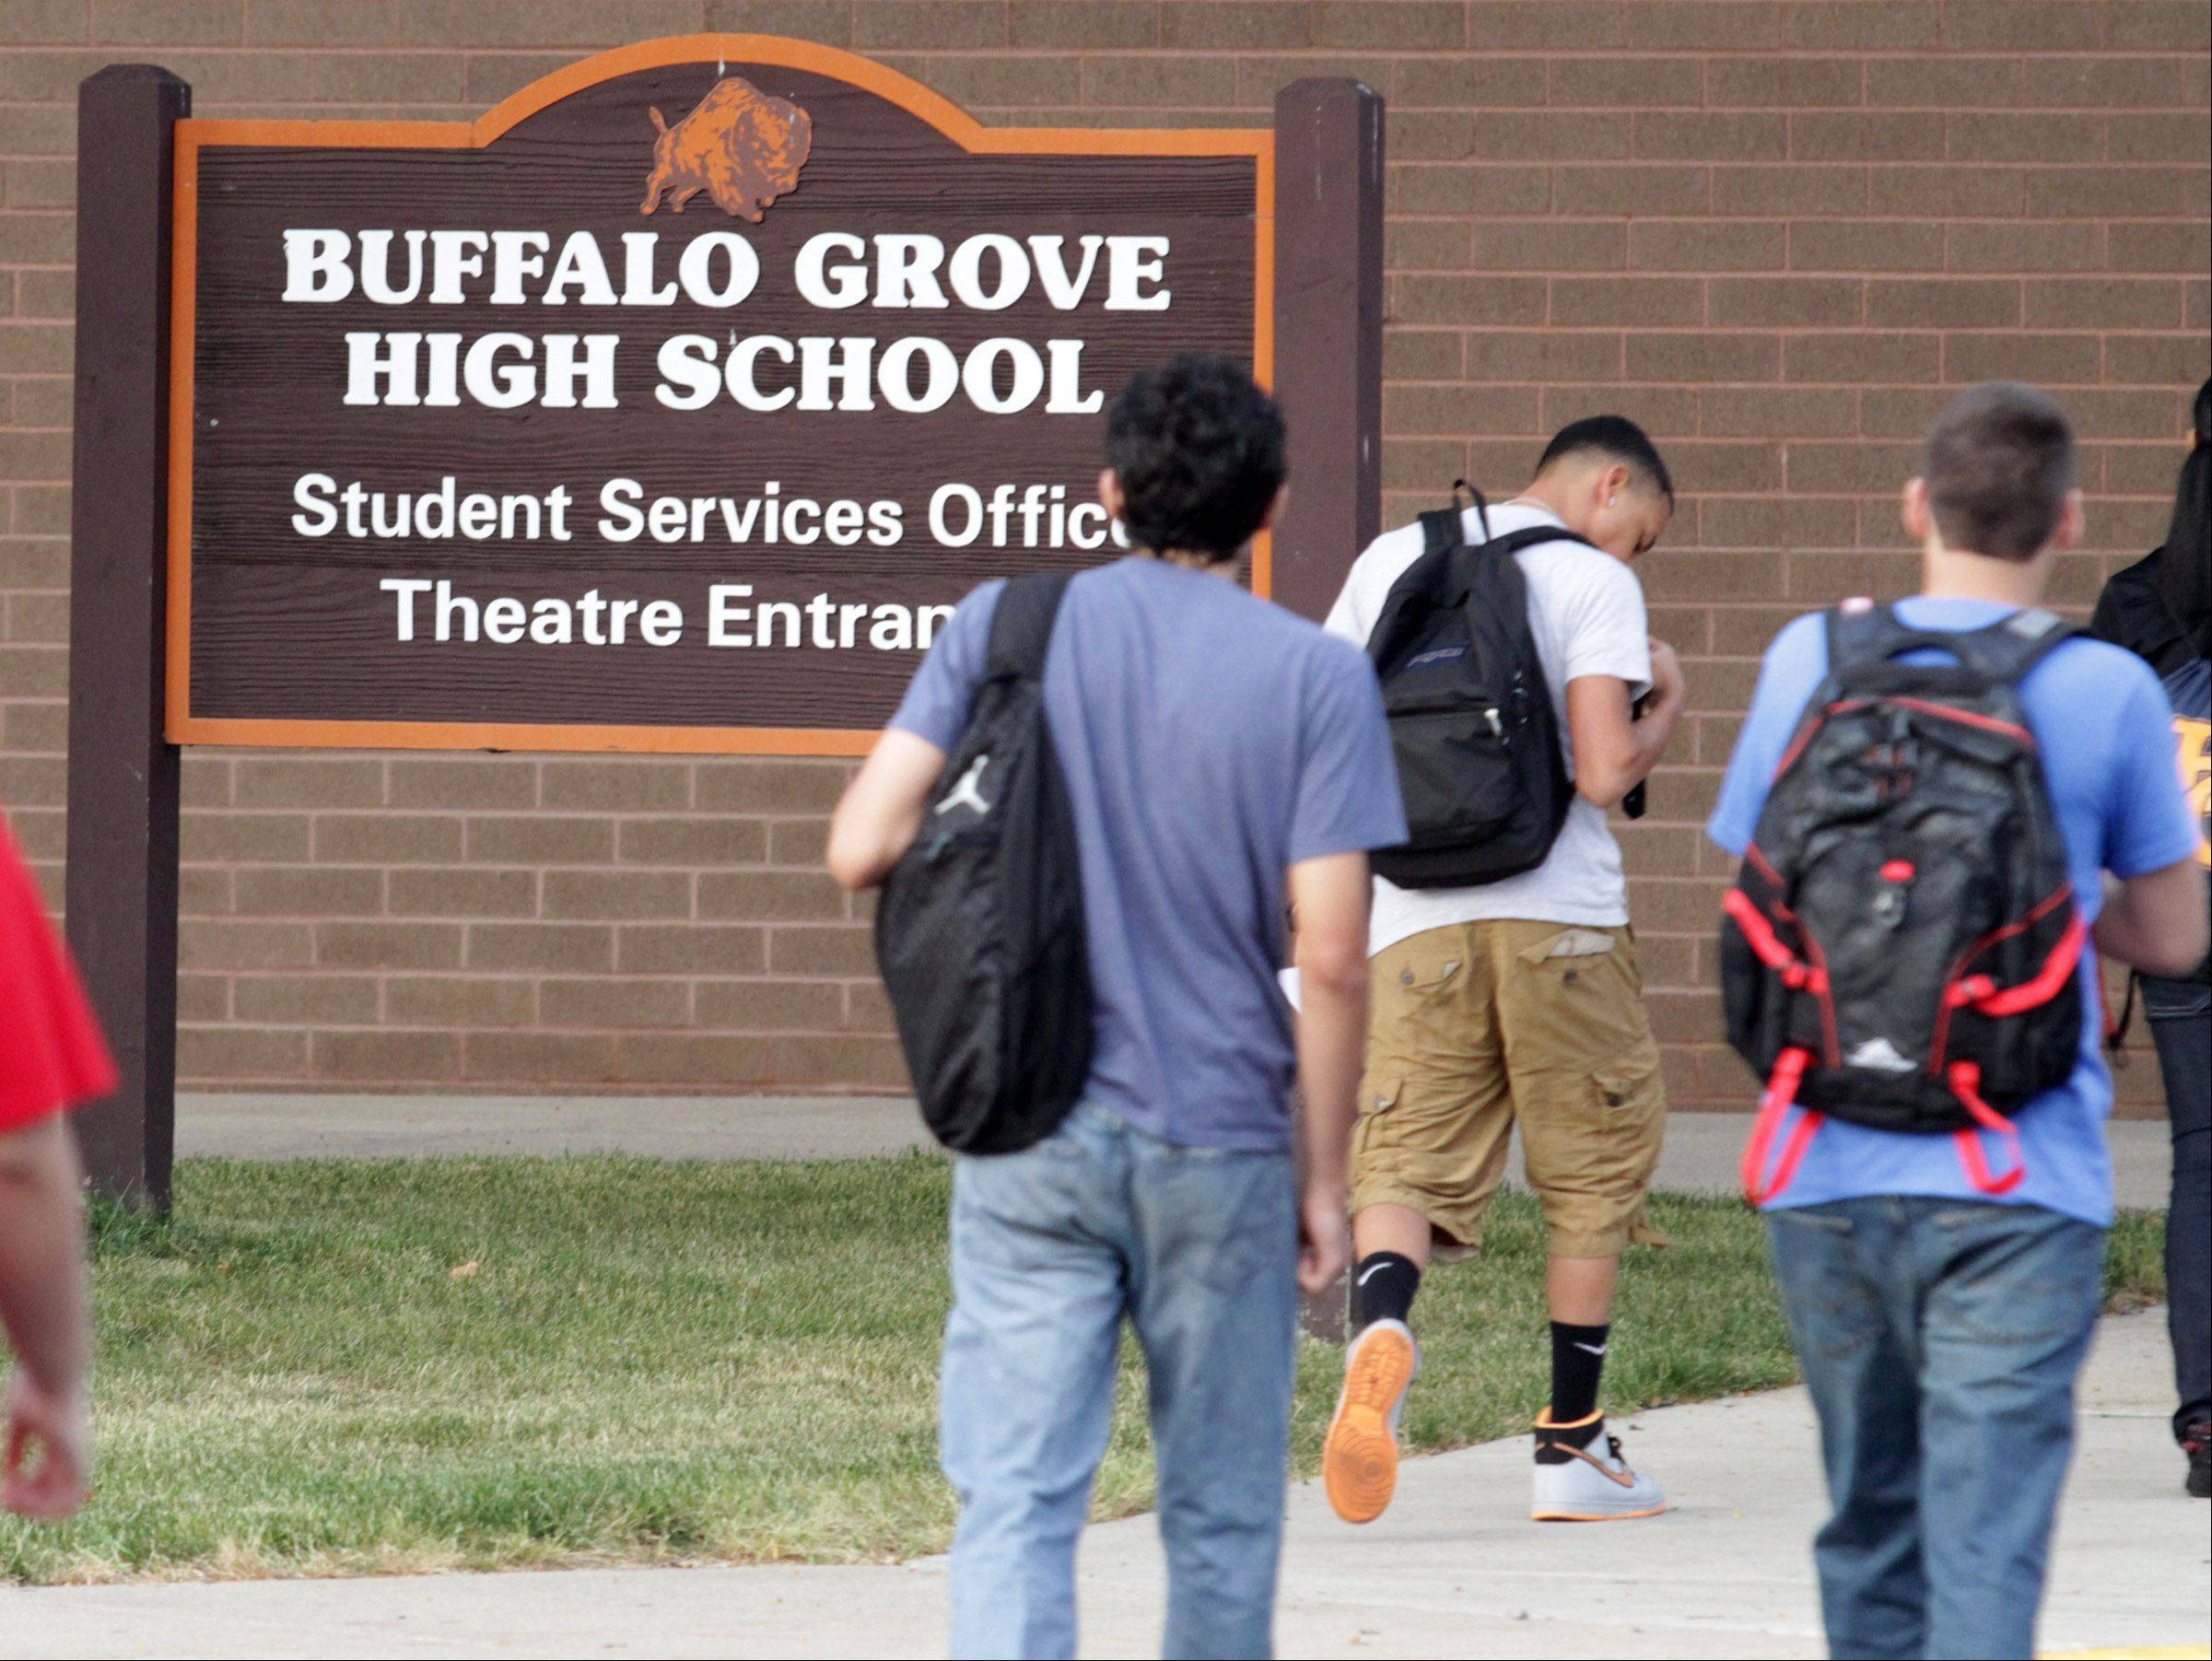 Students arrive at the first day of school at Buffalo Grove High School on Wednesday.